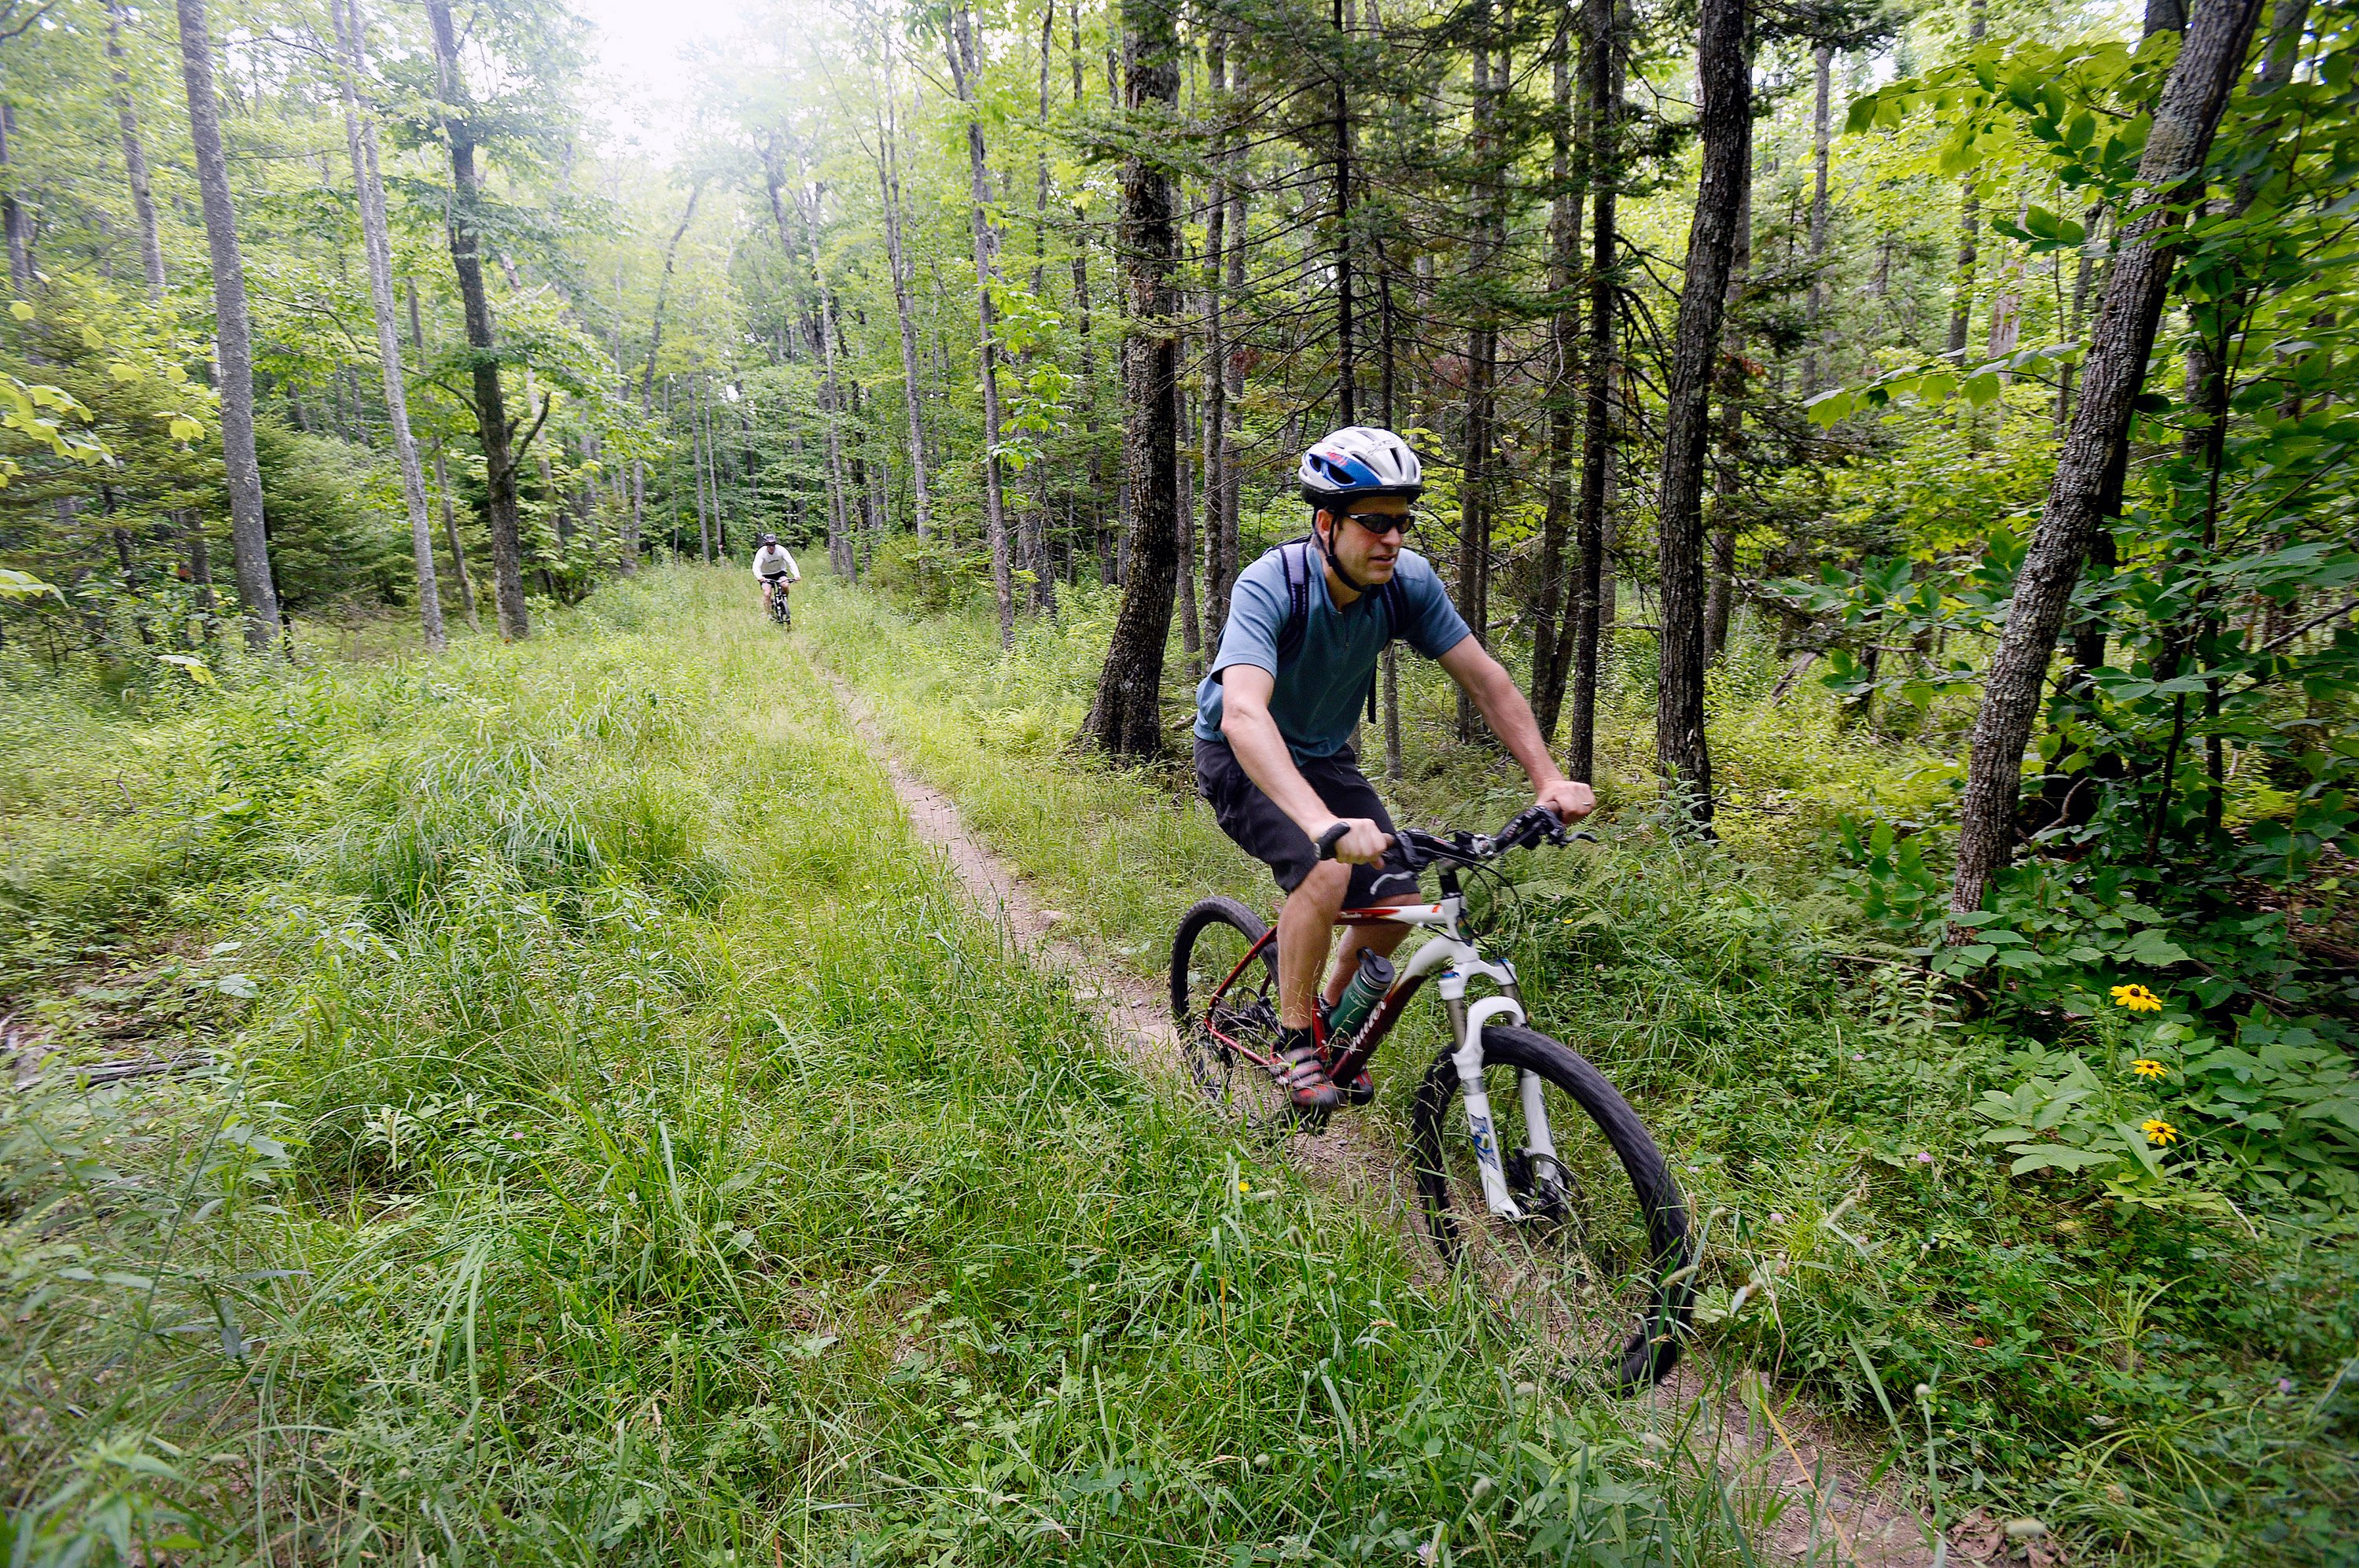 While some sections of the current trail system around Ragged Mountain are suitable for beginners, the expanded system is expected to have more terrain available for new riders. Shawn Patrick Ouellette/Staff Photographer